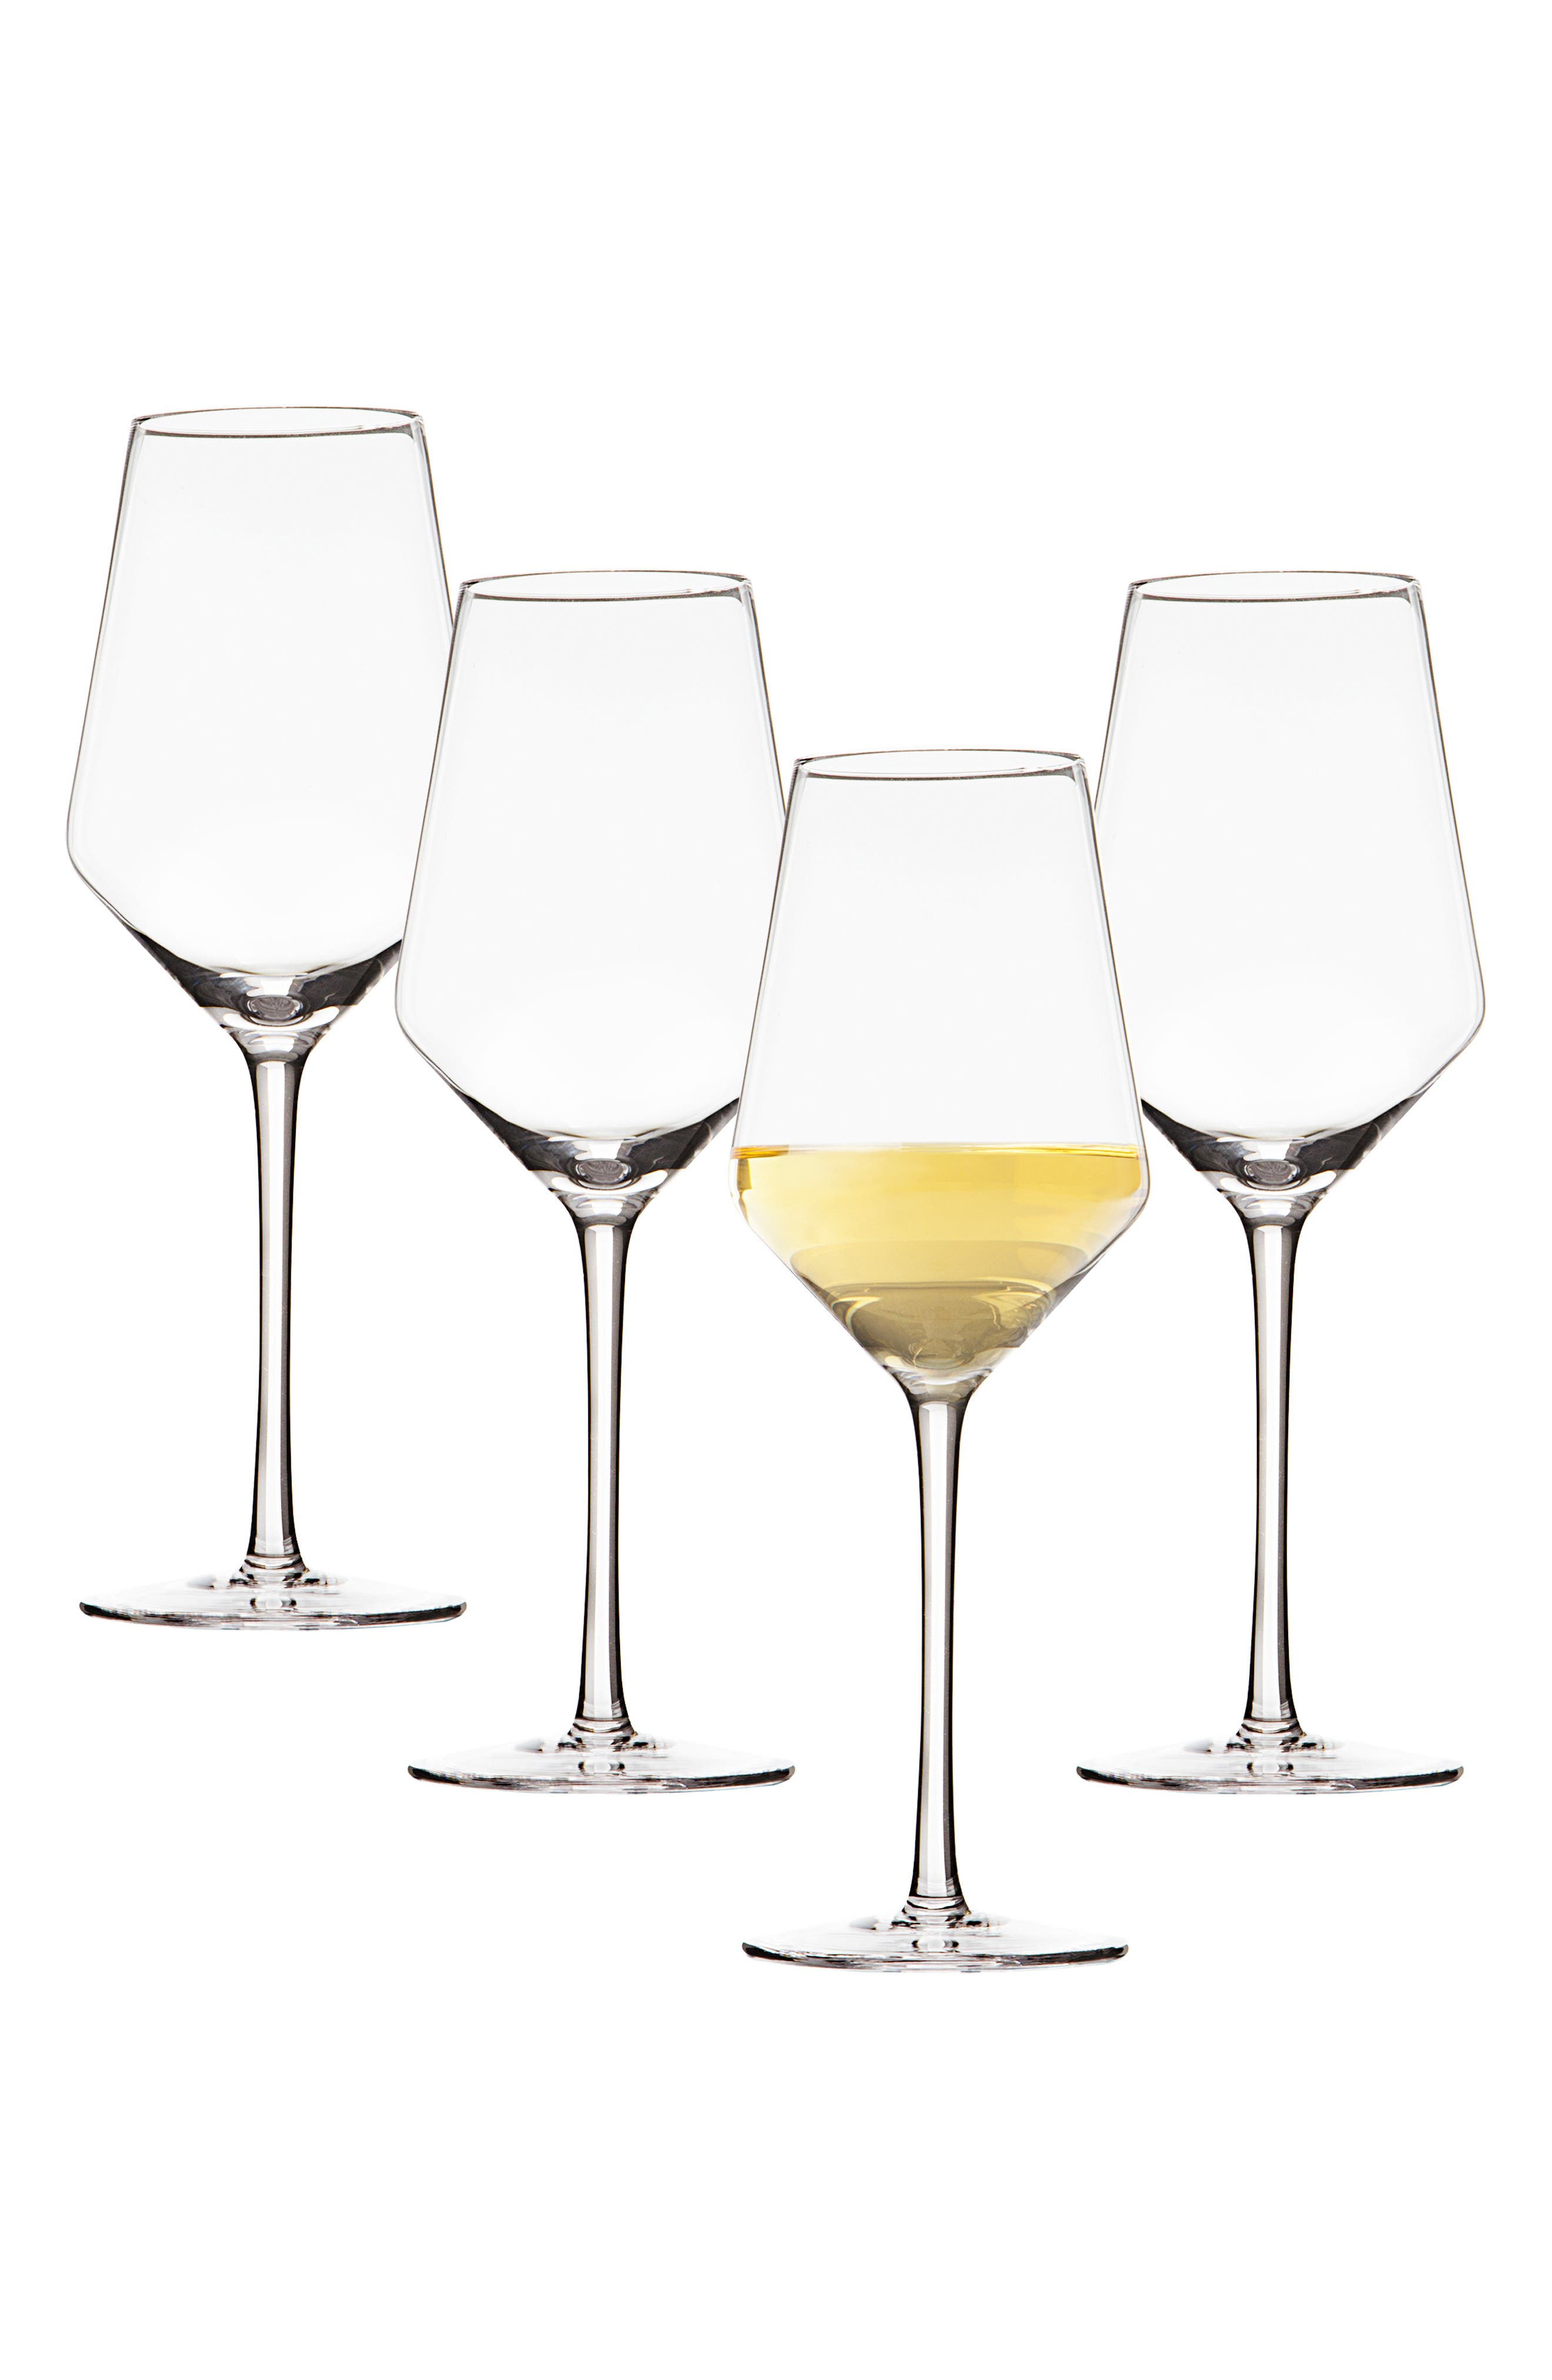 Estate Collection Set of 4 Monogram White Wine Glasses,                             Main thumbnail 1, color,                             100